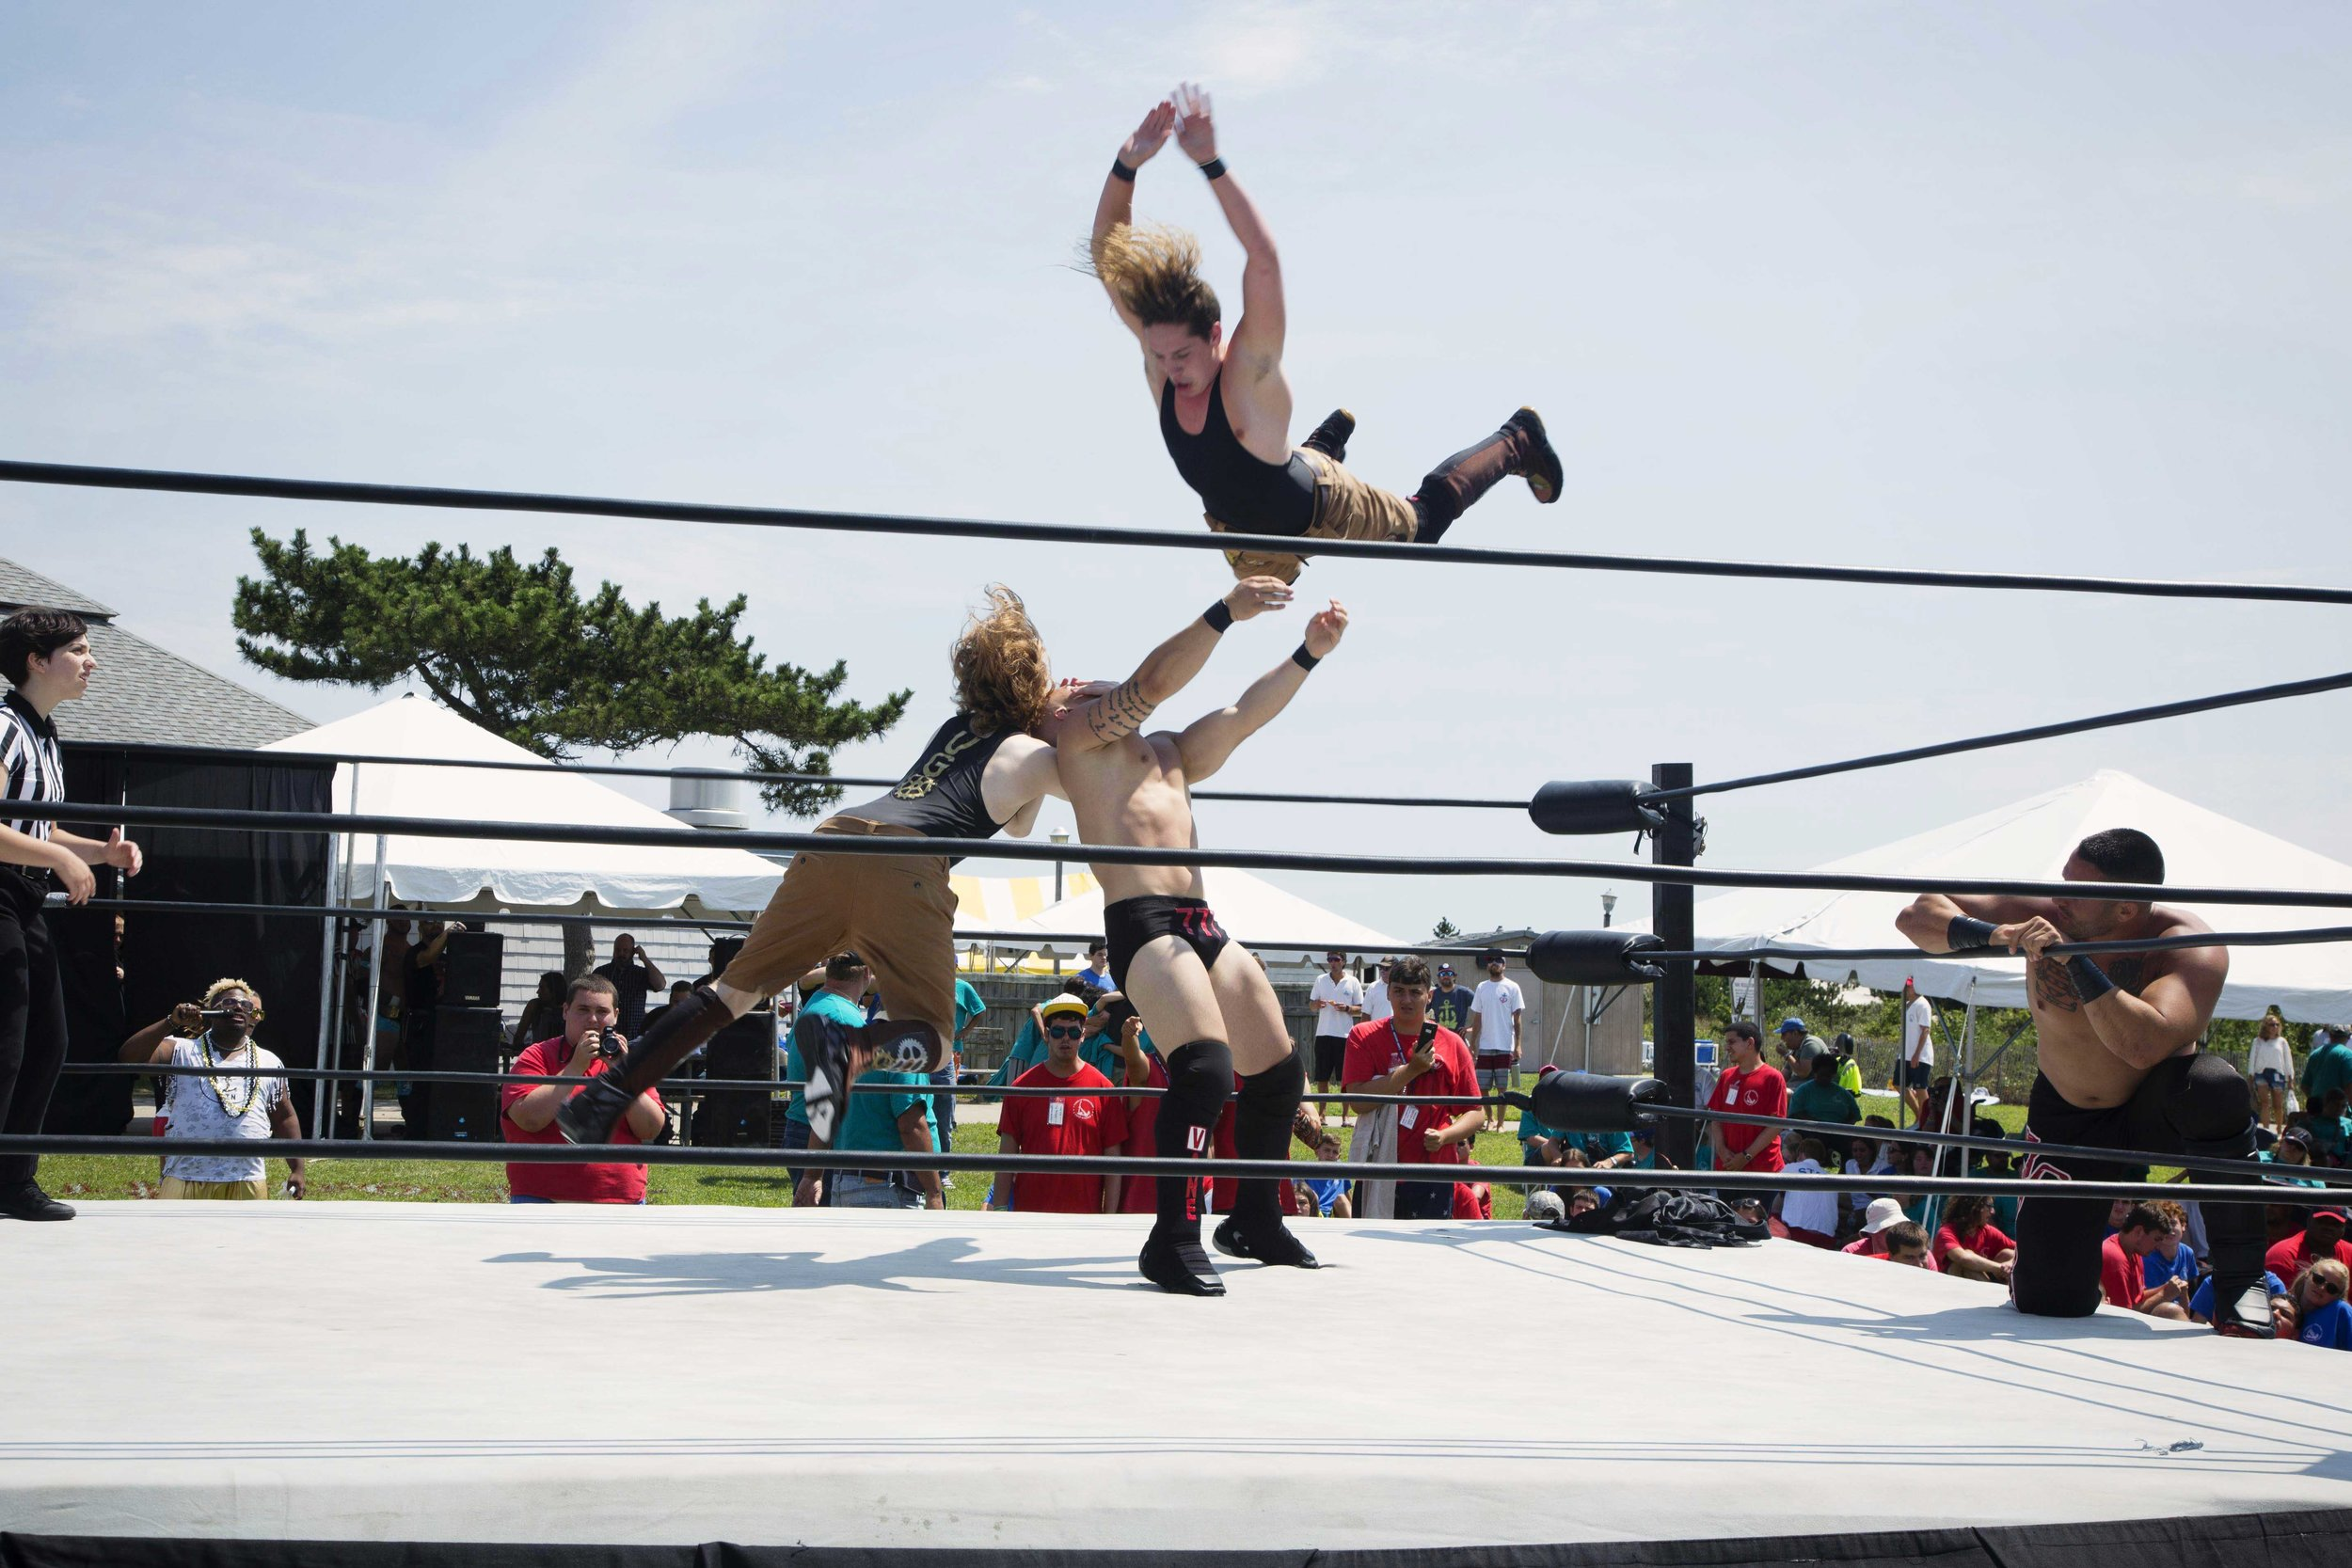 NYWC Wrestling Exhibition at Camp Anchor     In August of 2016 The Tommy Brull Foundation collaborated with The New York Wrestling Connection to bring this amazing exhibition to Camp ANCHOR in Lido Beach NY. The exhibition included a full size ring, a referee, and 15 professional wrestlers for an interactive show for all the children and adults at Camp ANCHOR. Click to picture to see hundreds of campers enjoy this great day.